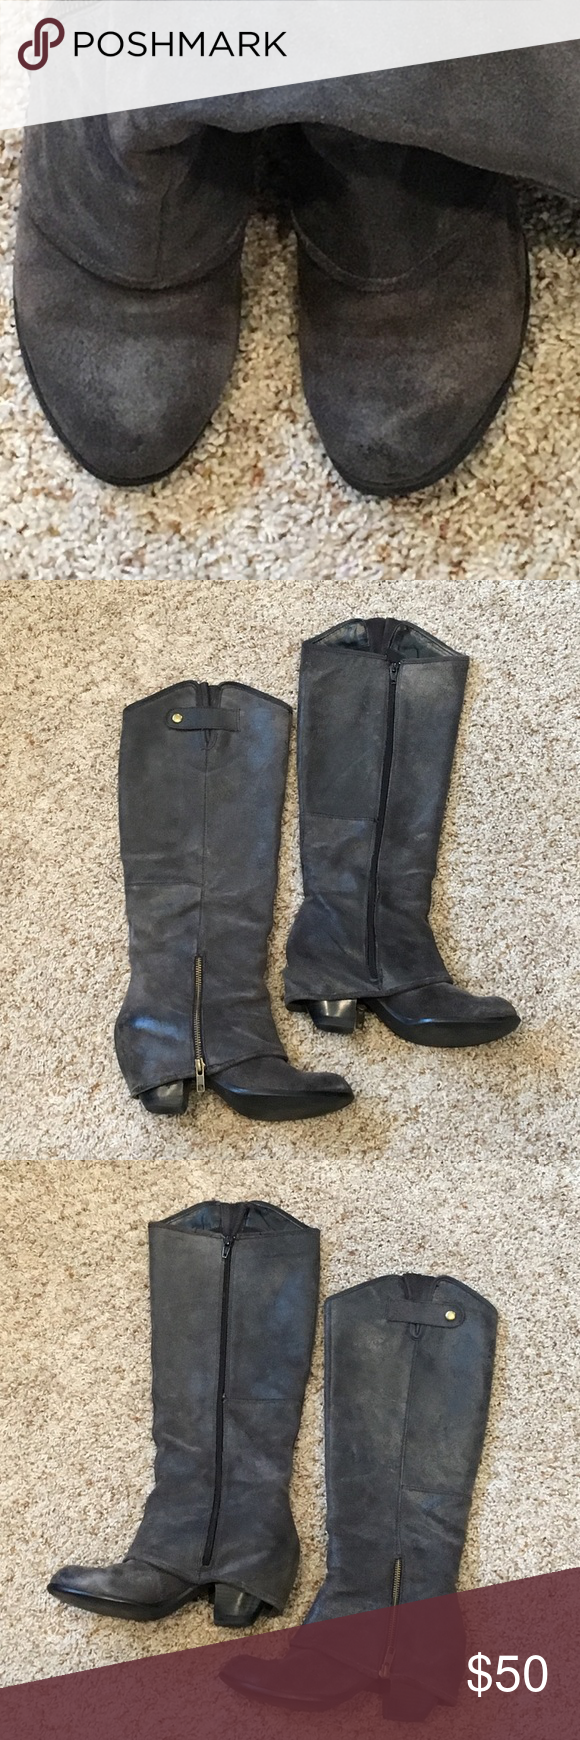 """Fergie Ledger Too Boot in Graphite These dark grey nubuck leather boots have been well loved, but alas, need to go. They have a full zipper, 2-1/2"""" heel height, 15-1/2"""" shaft height on the inside (17-1/2"""" on the outside), and approx. 15-1/4"""" circumference at the calf. Signs of wear on the back of the right boot and where the short zipper rubs on the leather (you would never have it open so people wouldn't see it - just wanted to show you-pic #4). Fairly new heel tips. Price reflects wear…"""